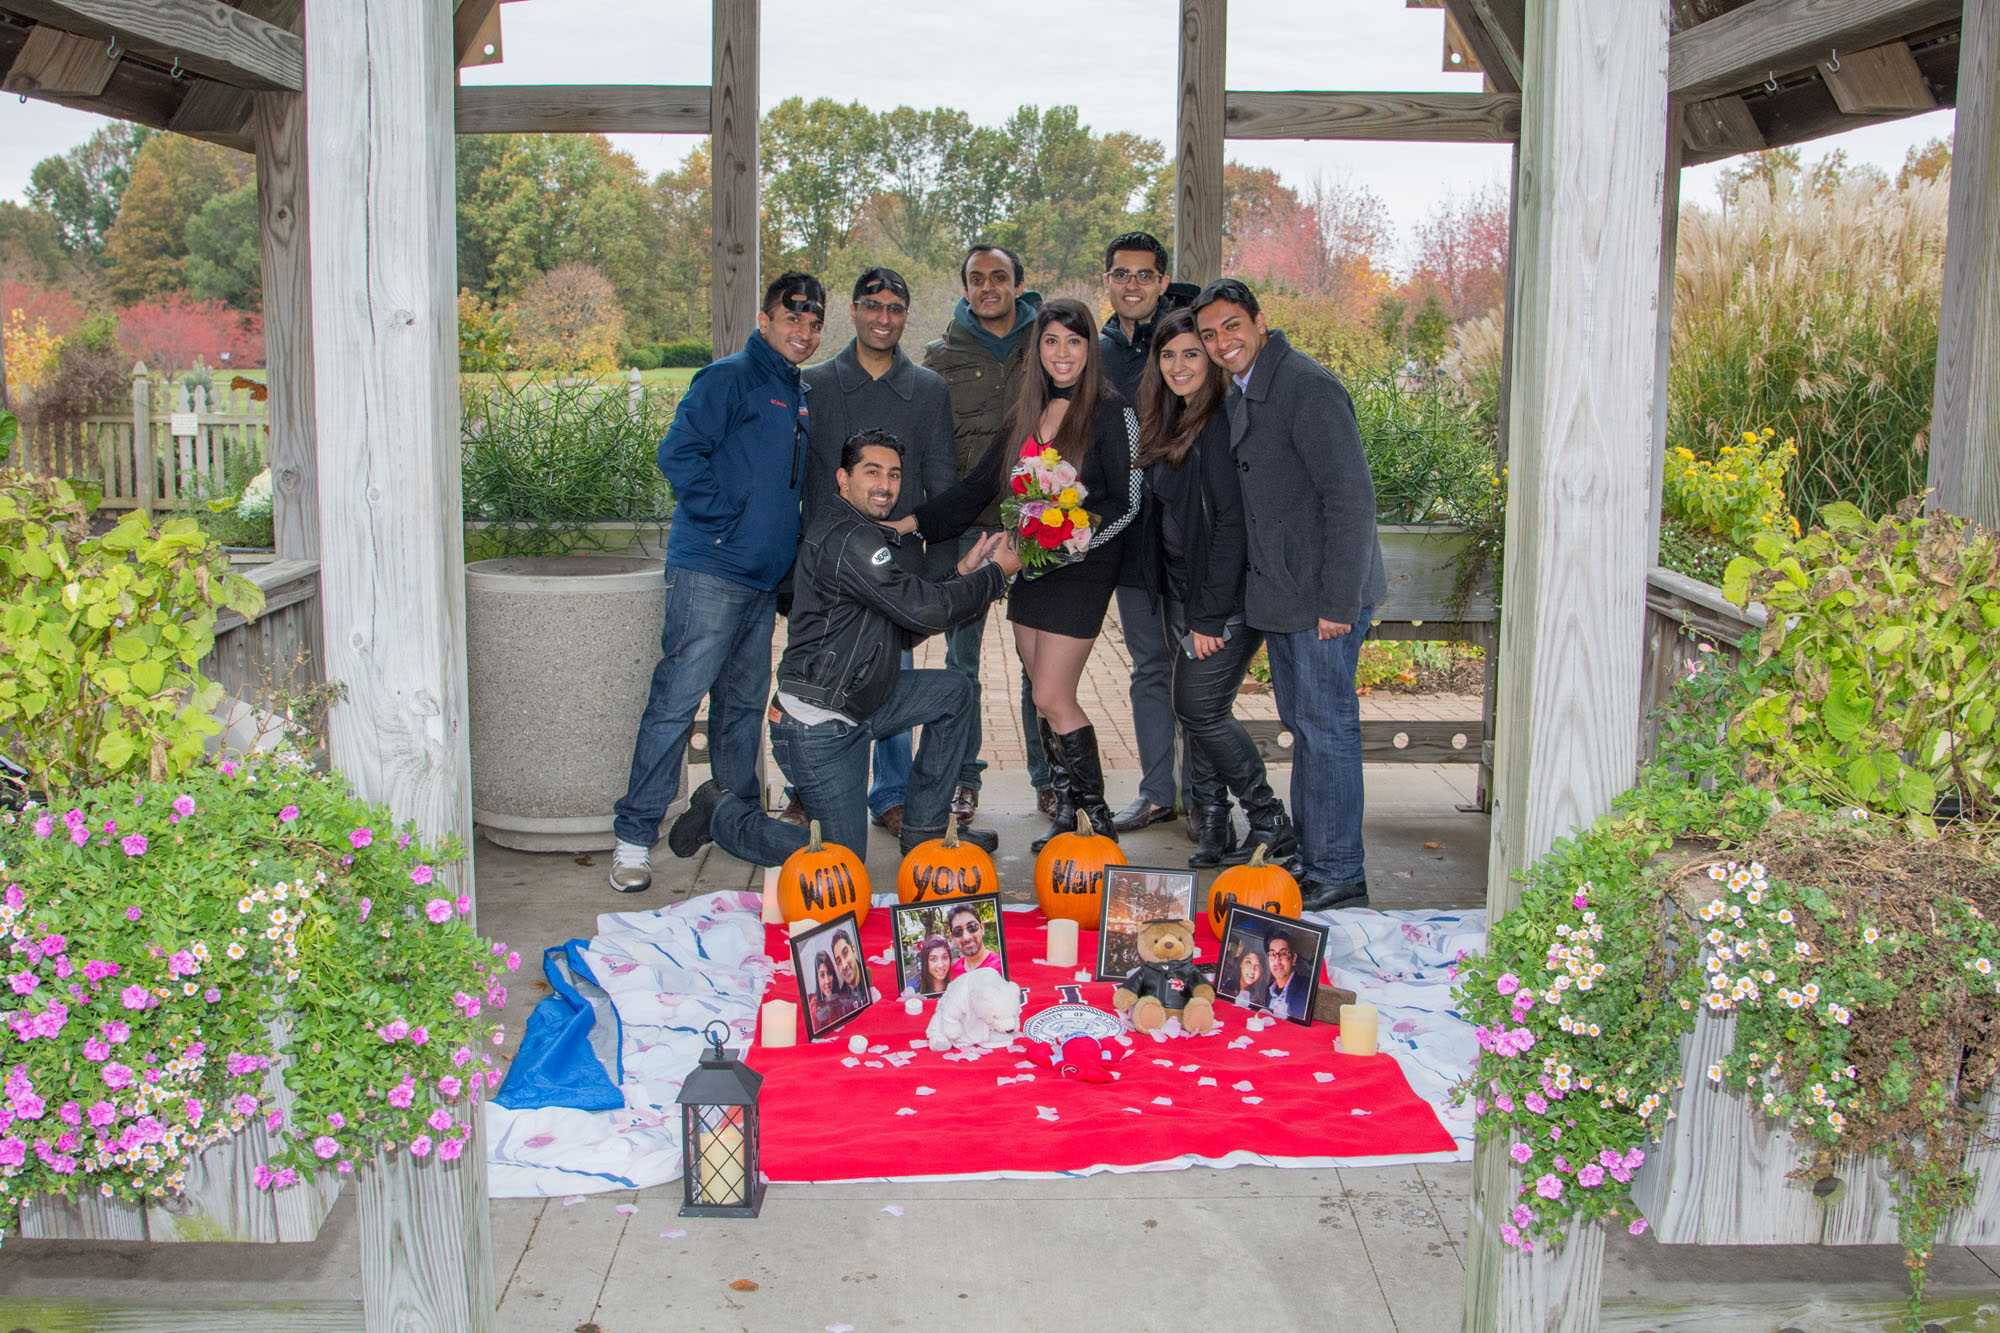 (kneeling) Ahmed Hussain, 2009 graduate of the College of Business, his fiance (with flowers) Munira Charania, a first year MBA student, and their friends and family pose together in the Idea Garden at the Arboretum on Saturday, Oct. 31 after Hussain proposed to Charania.